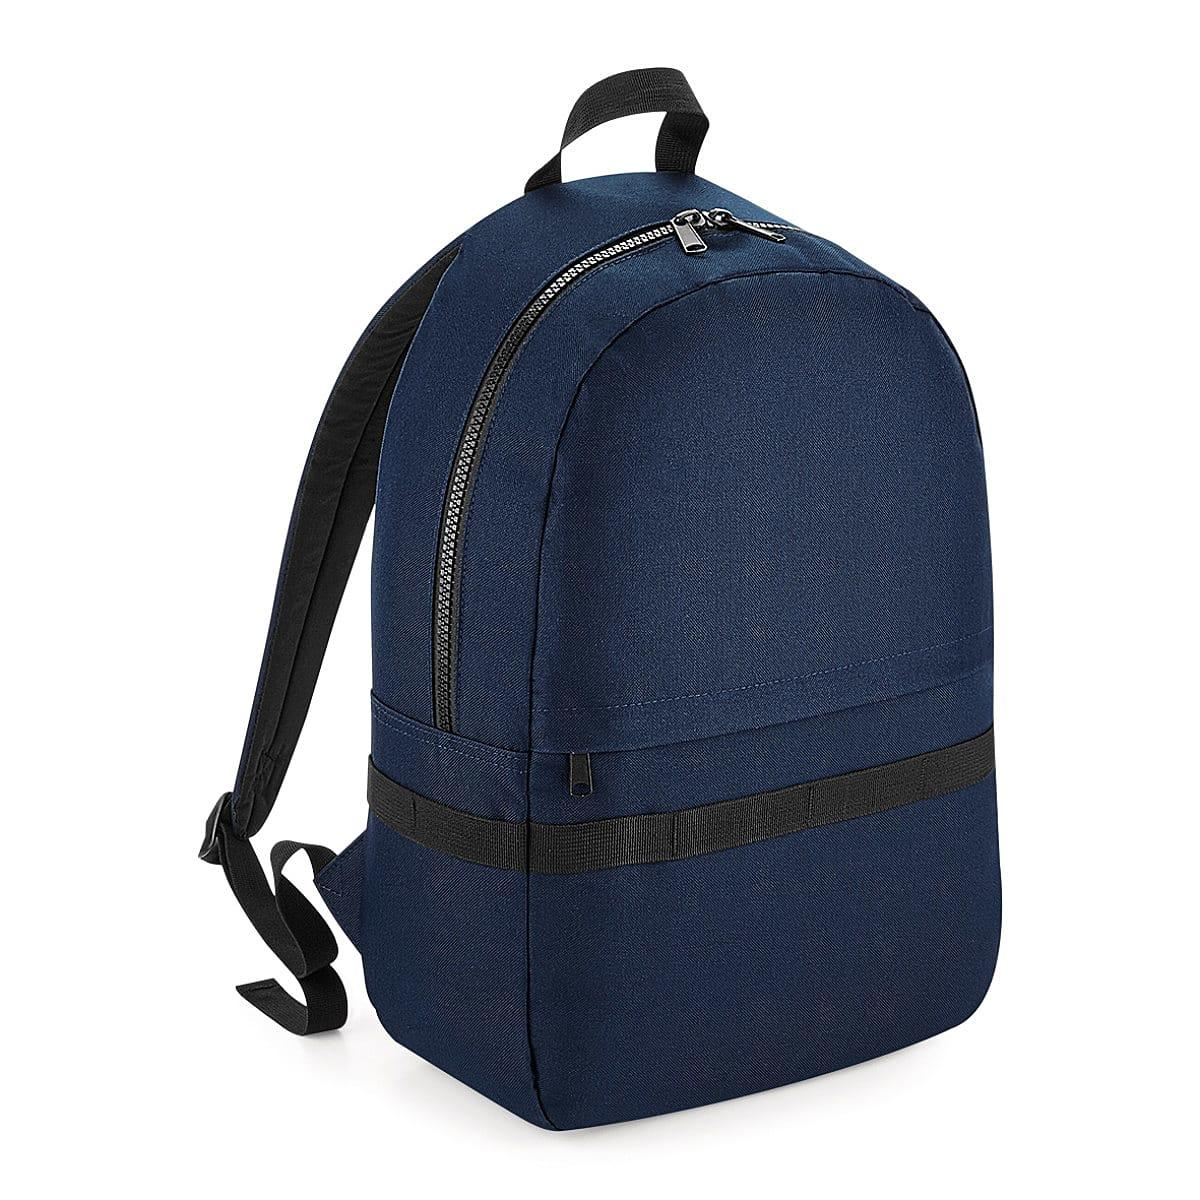 Bagbase Modulr 20 Litre Backpack in French Navy (Product Code: BG240)